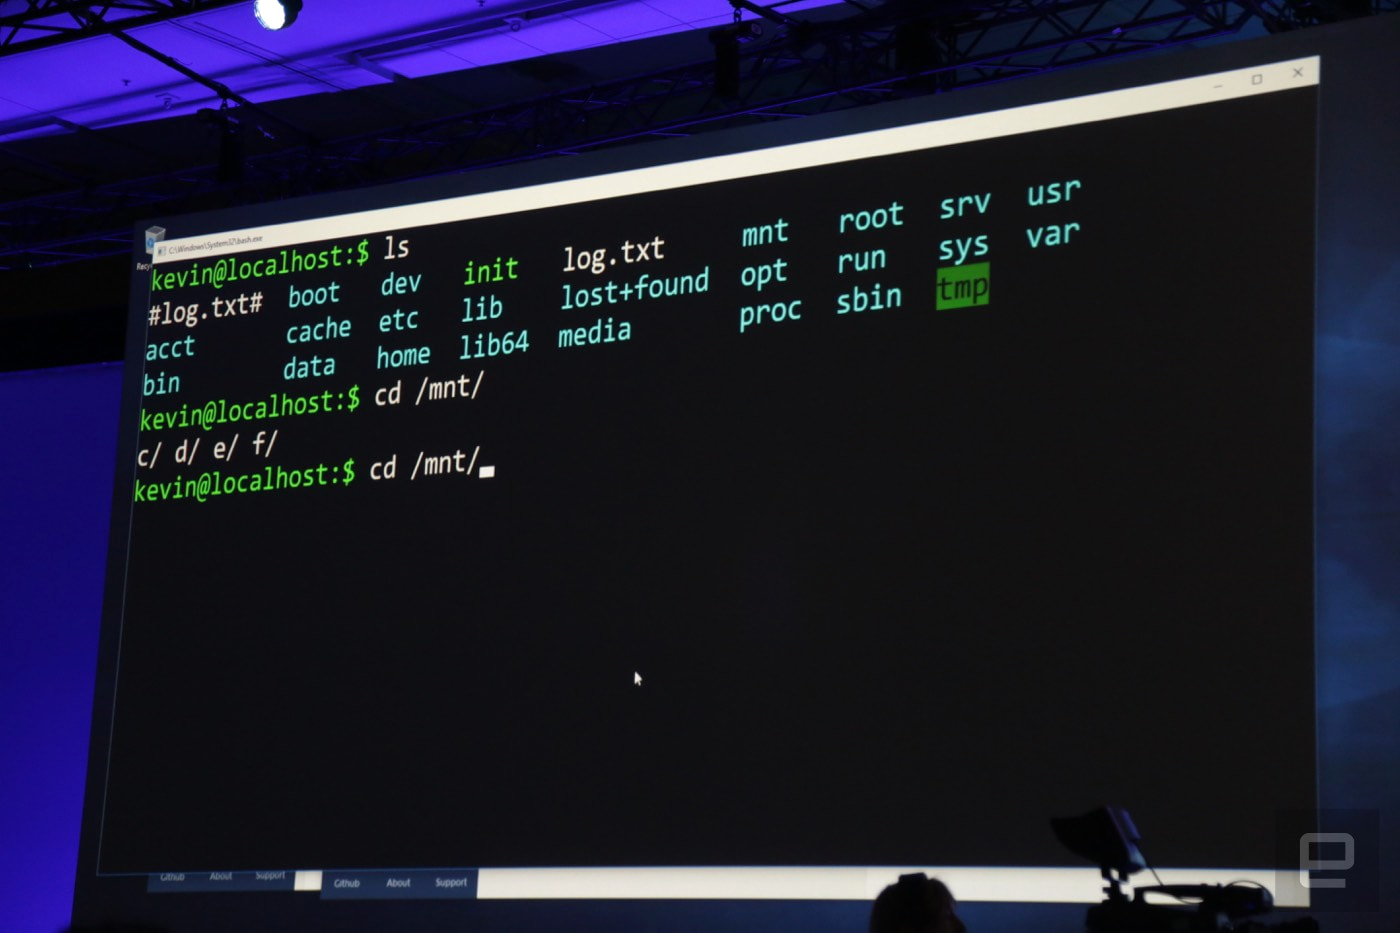 Linux command-line tools are coming to Windows 10